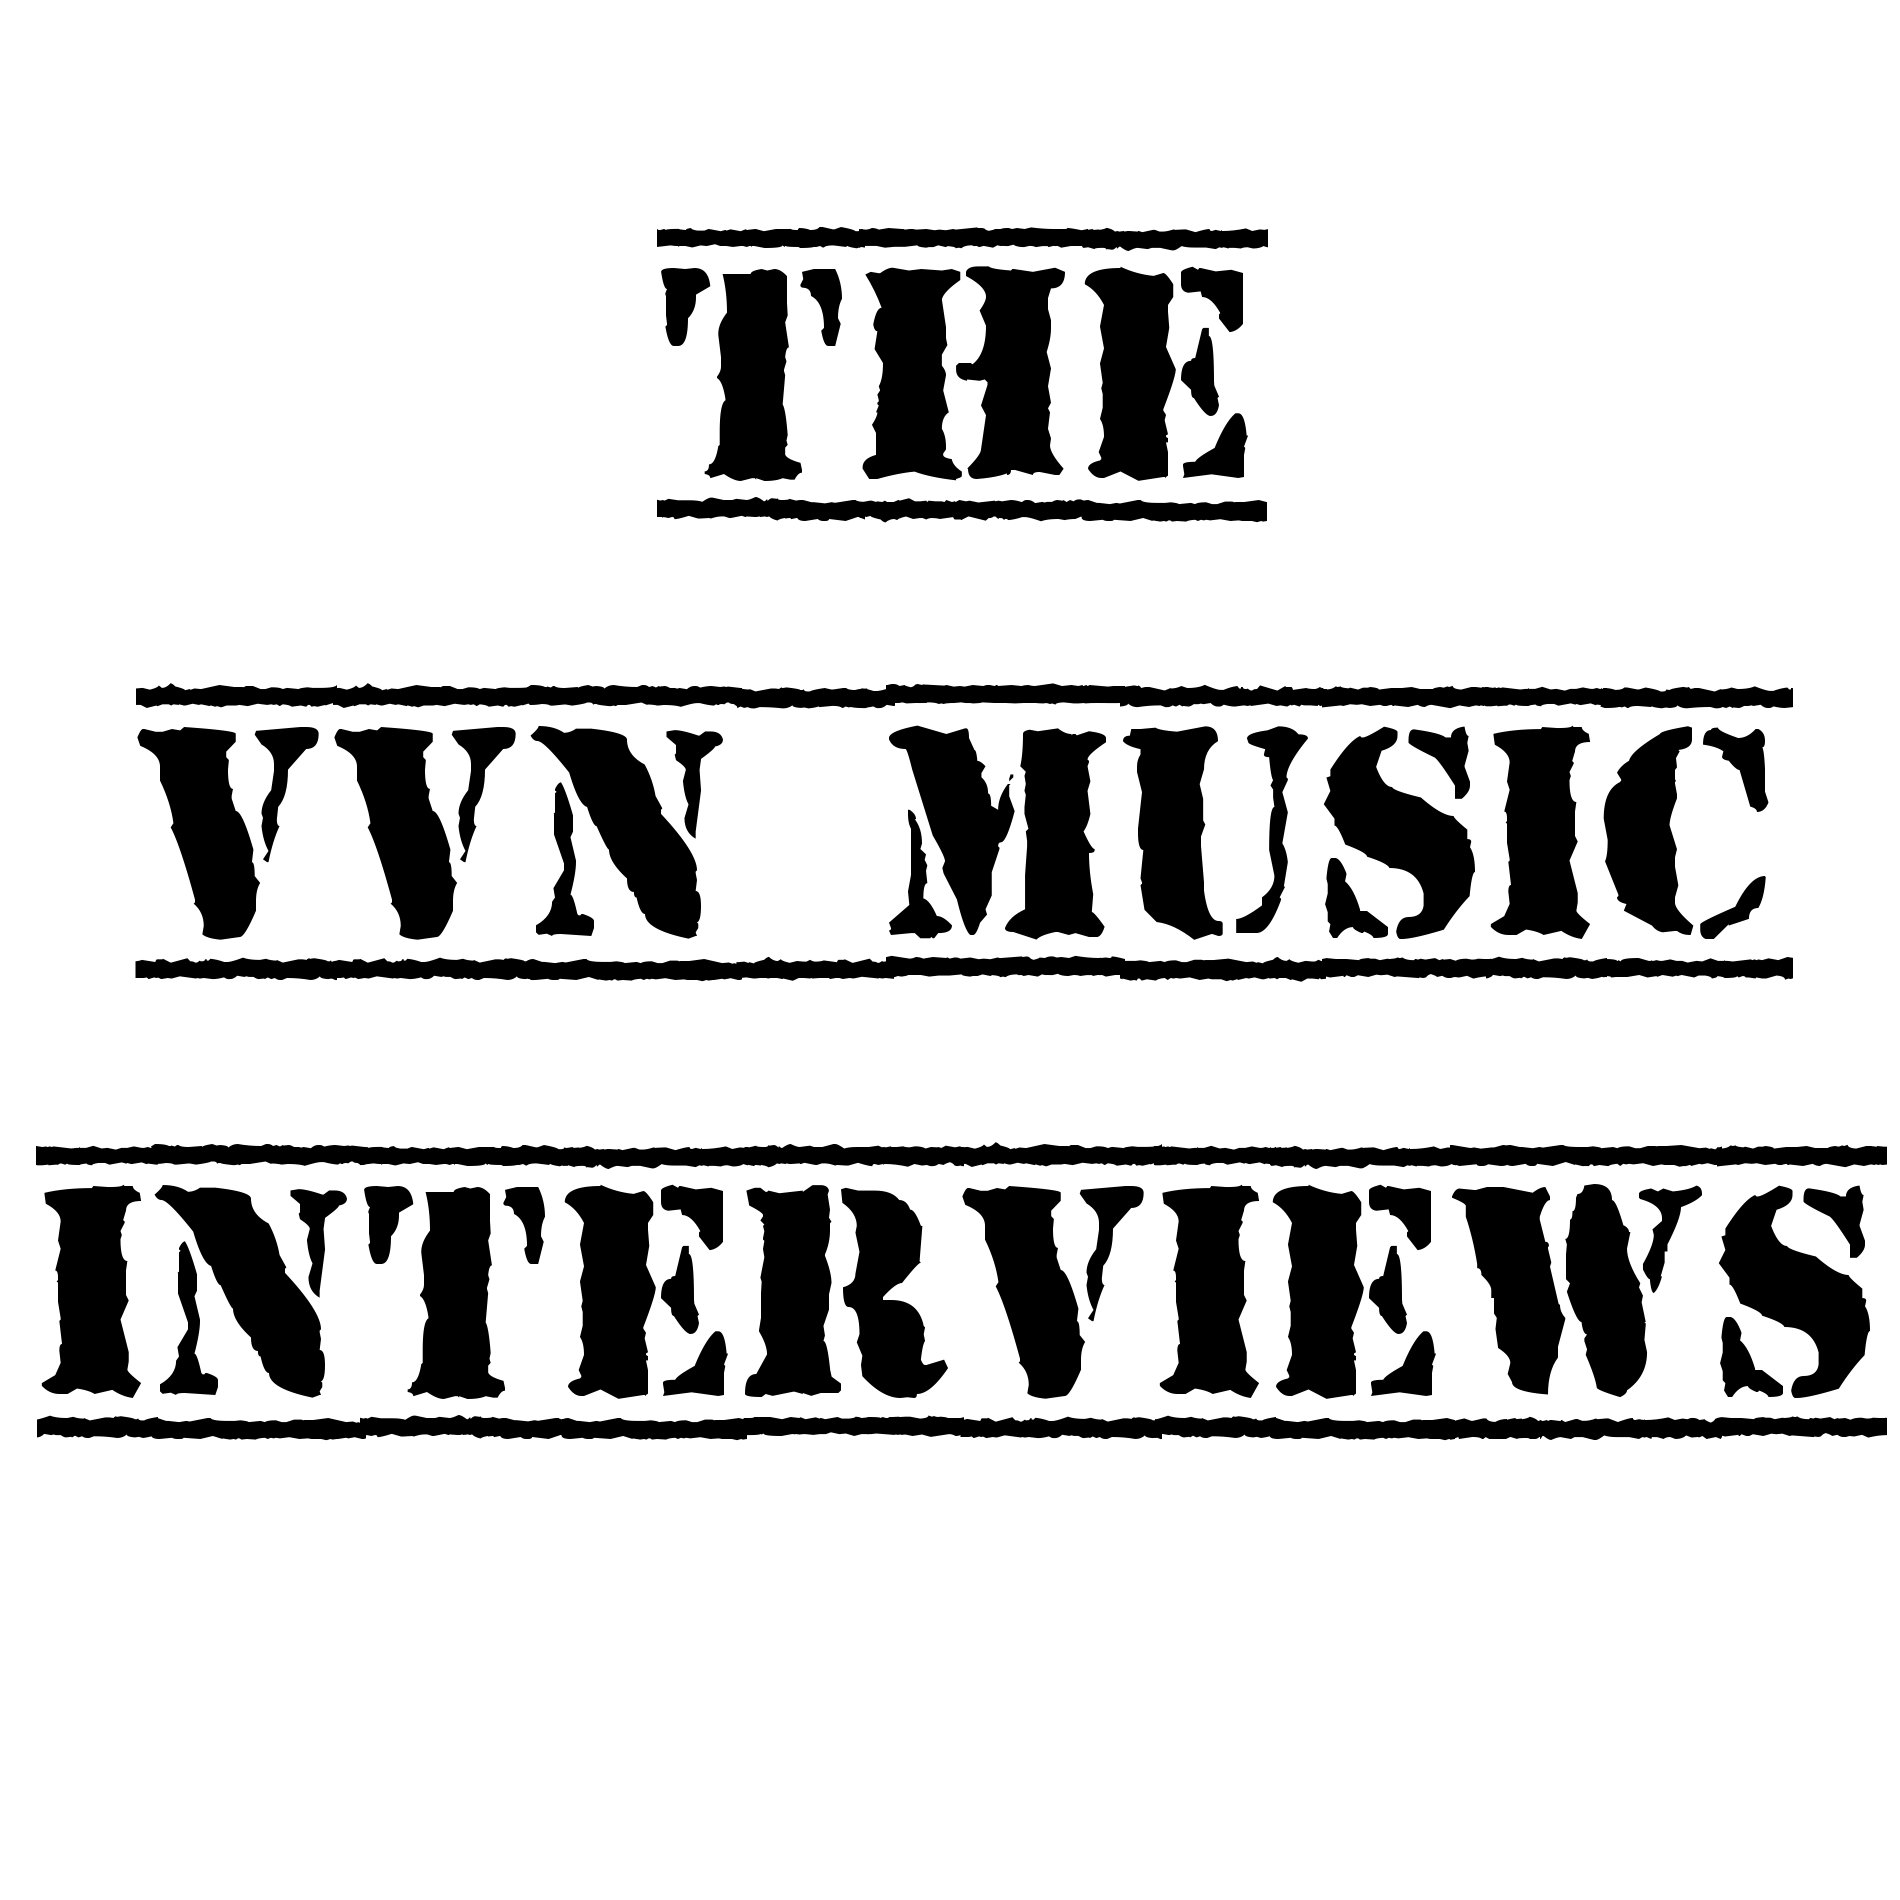 The VVN Music Interviews show art